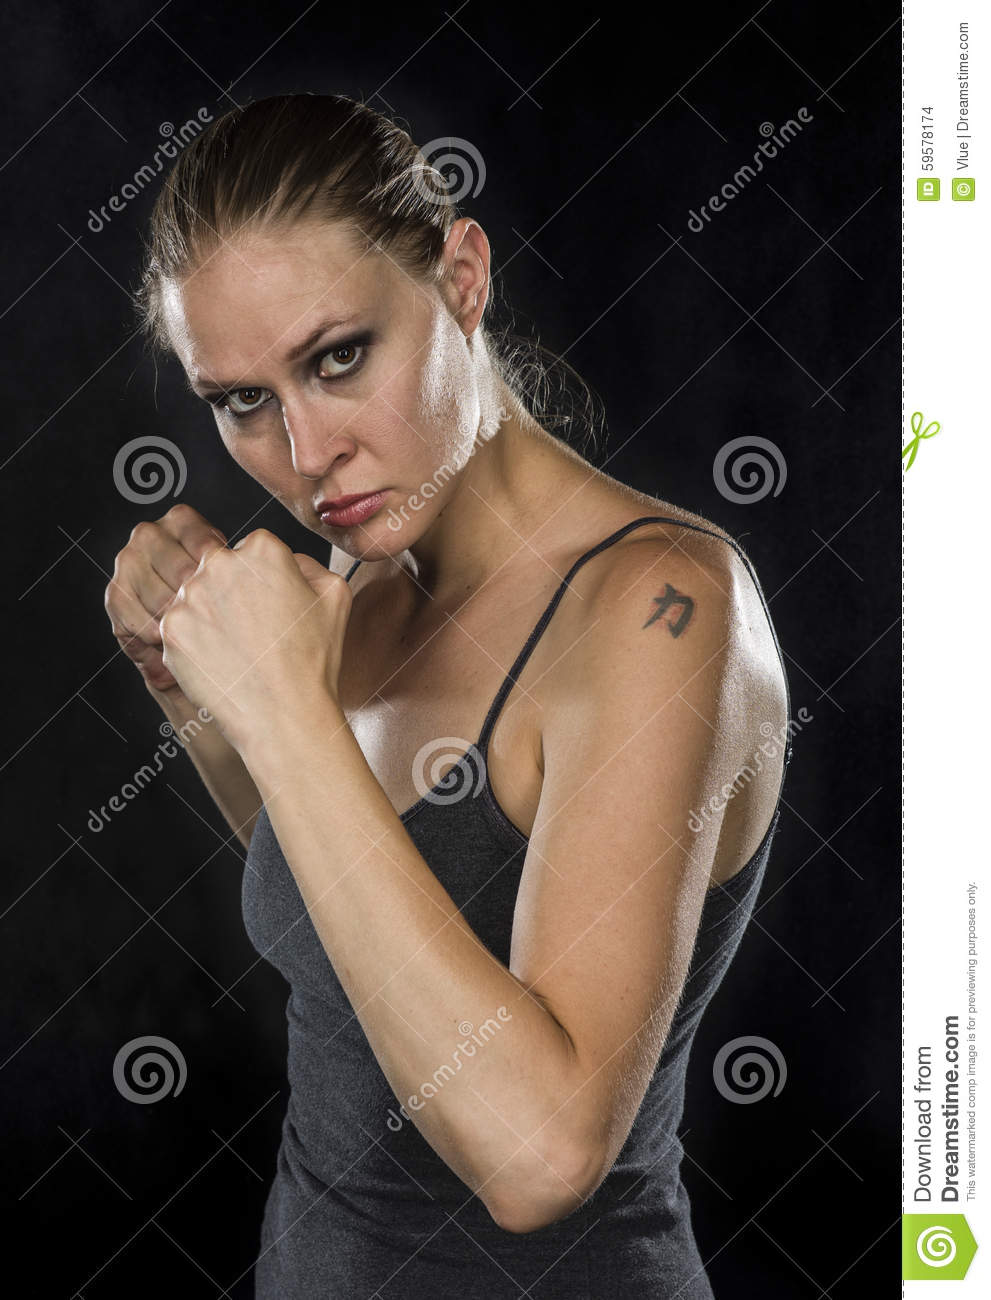 Young Female Fighter Looking Fierce at the Camera